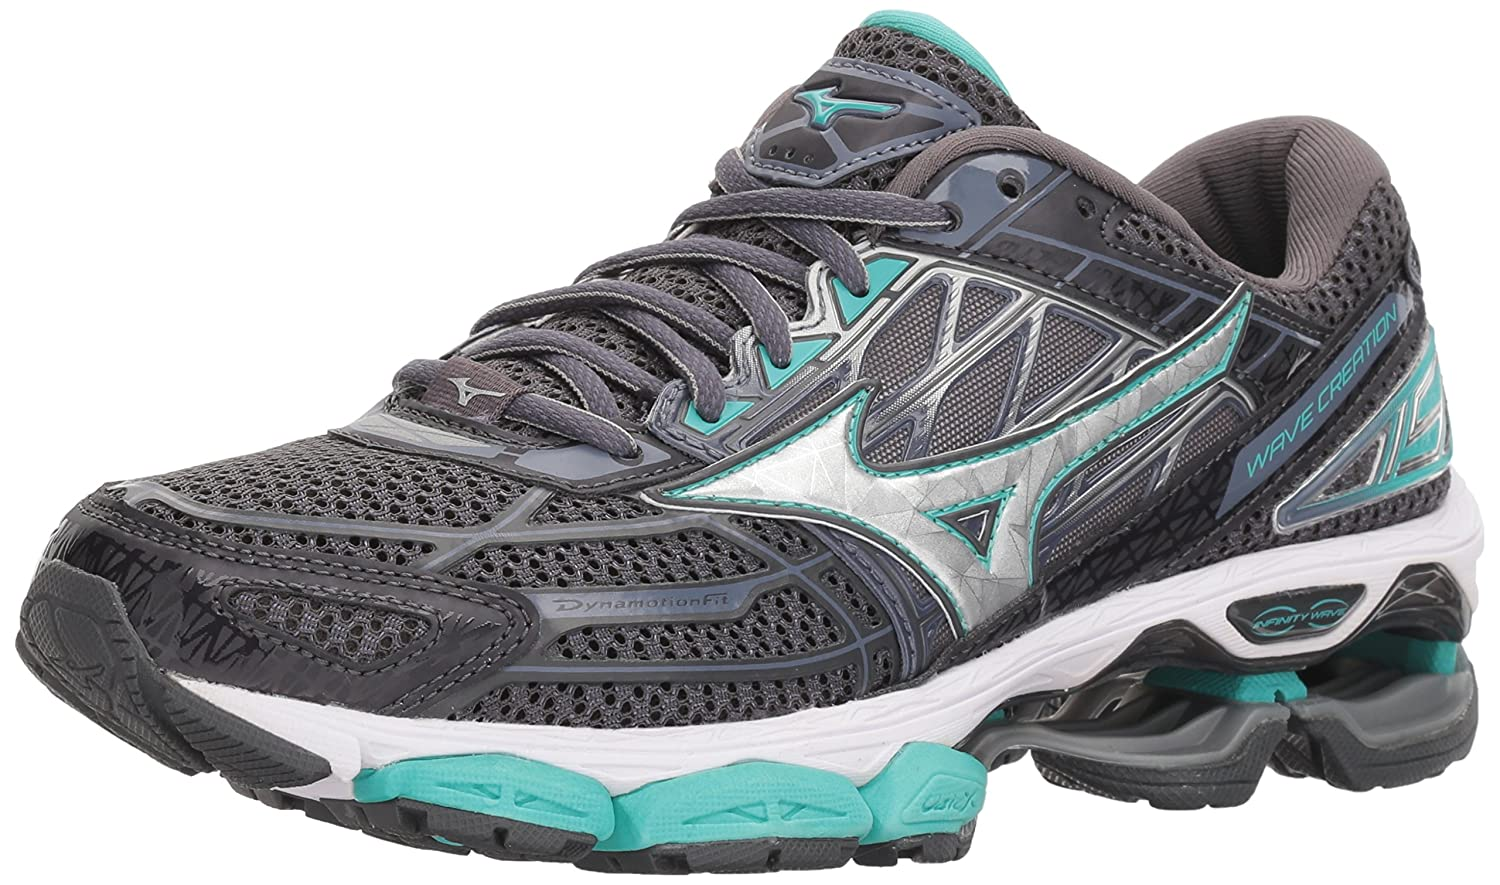 Mizuno Running Women's Wave Creation 19 Shoes B072DRMV2C 9 B(M) US|Magnet/Silver